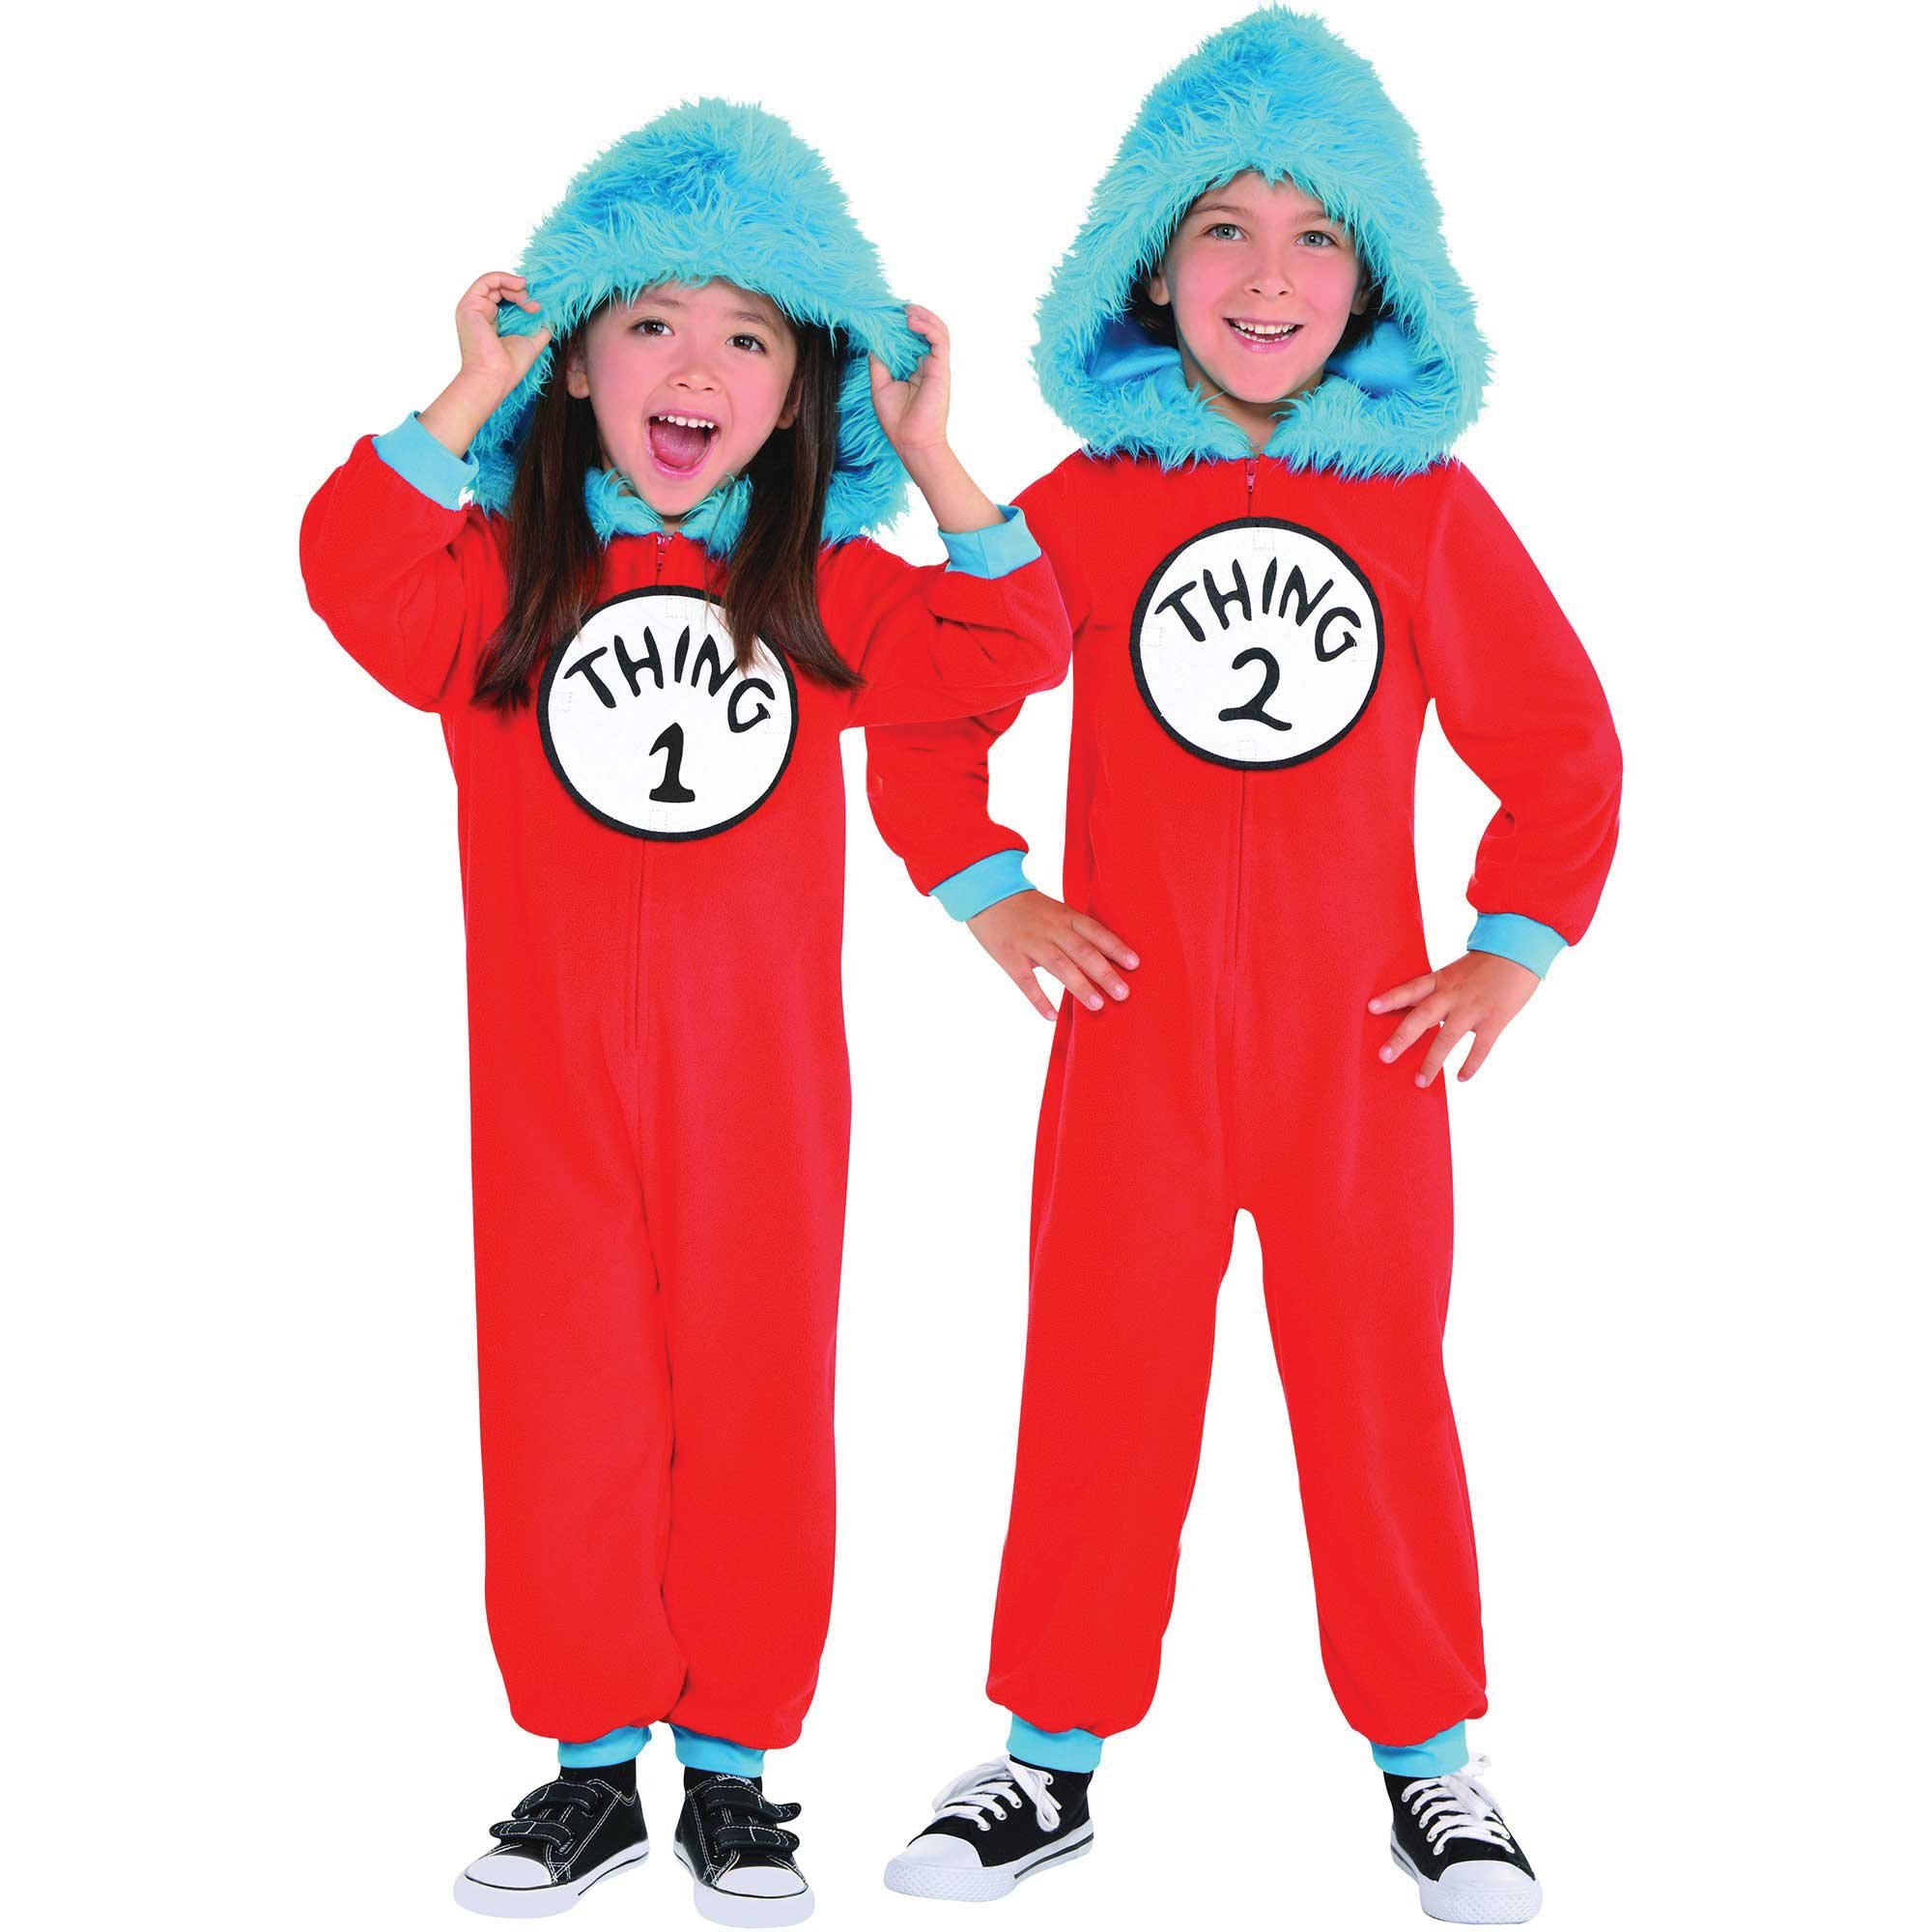 Thing 1 & 2 Jumpsuit Costume Set